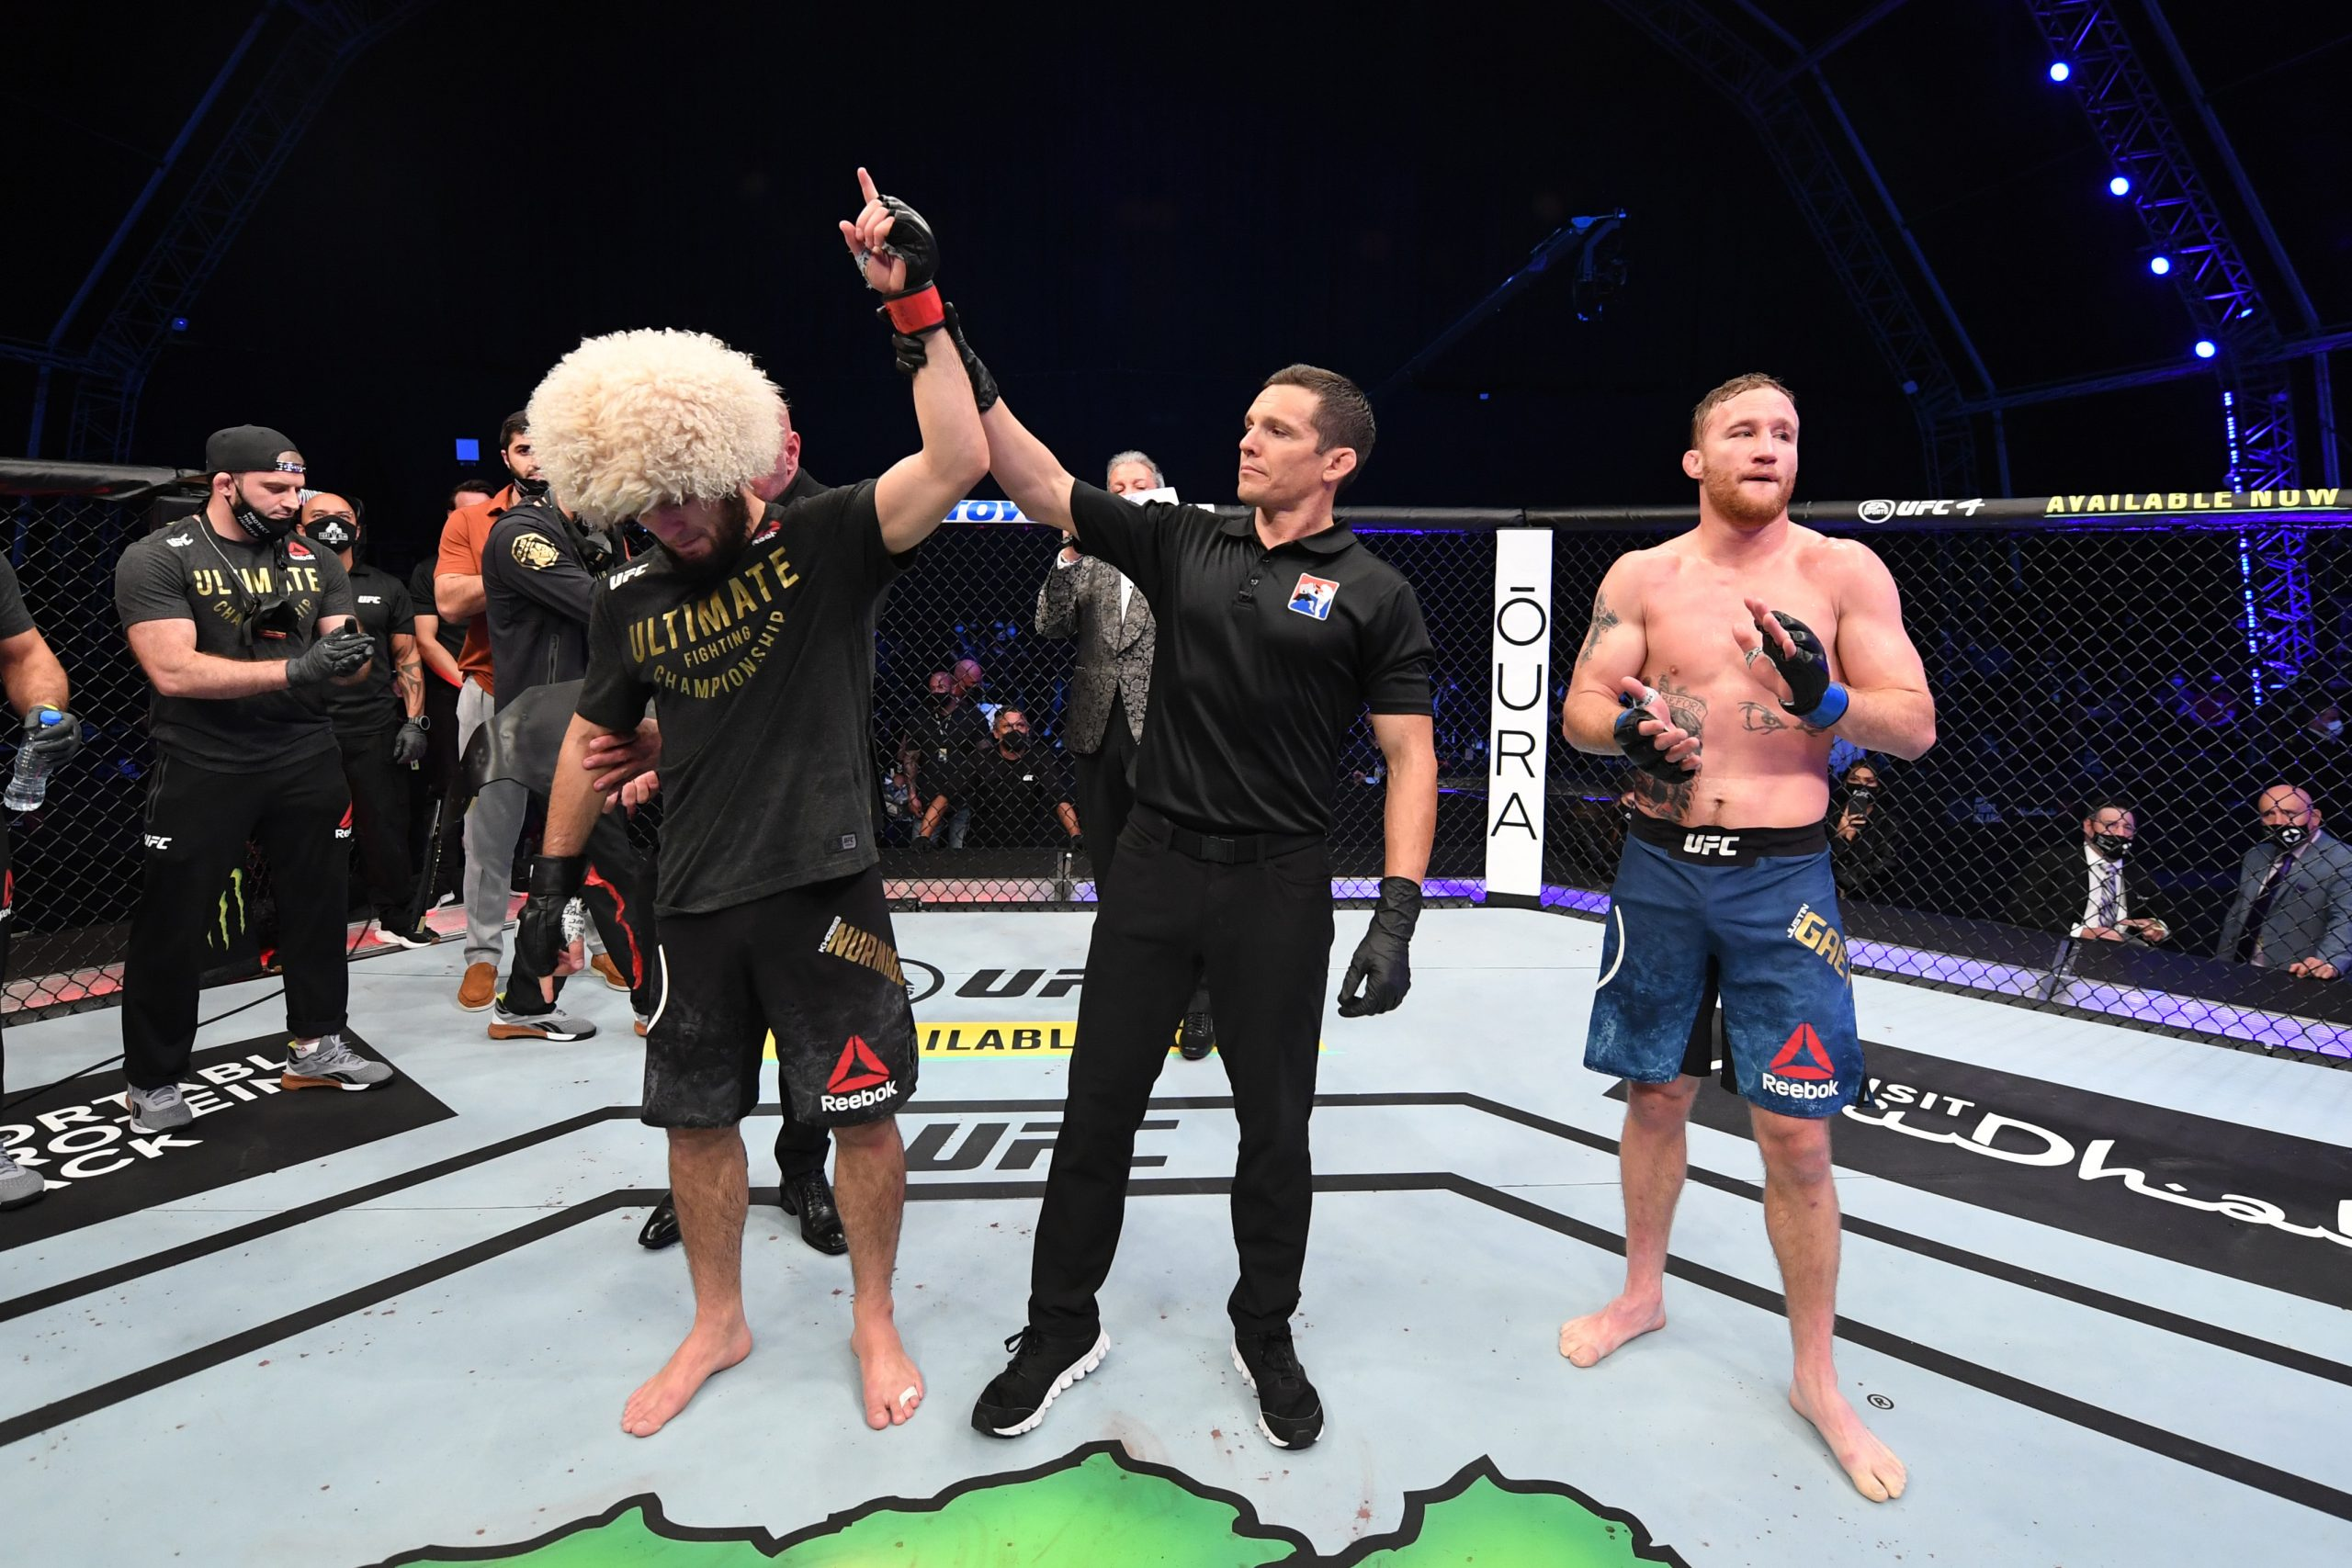 Who won the fight at UFC 254?